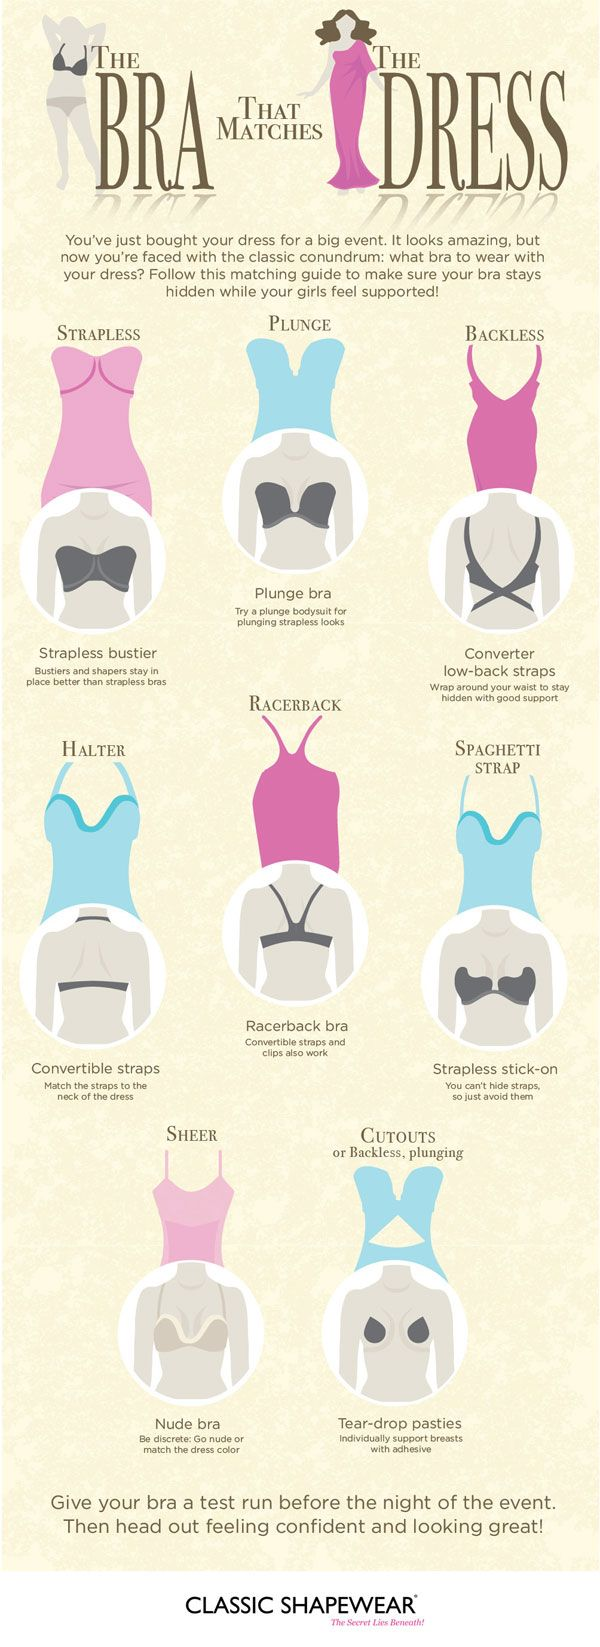 Follow this matching guide to make sure your bra stays hidden while your girls feel supported! Infographic!